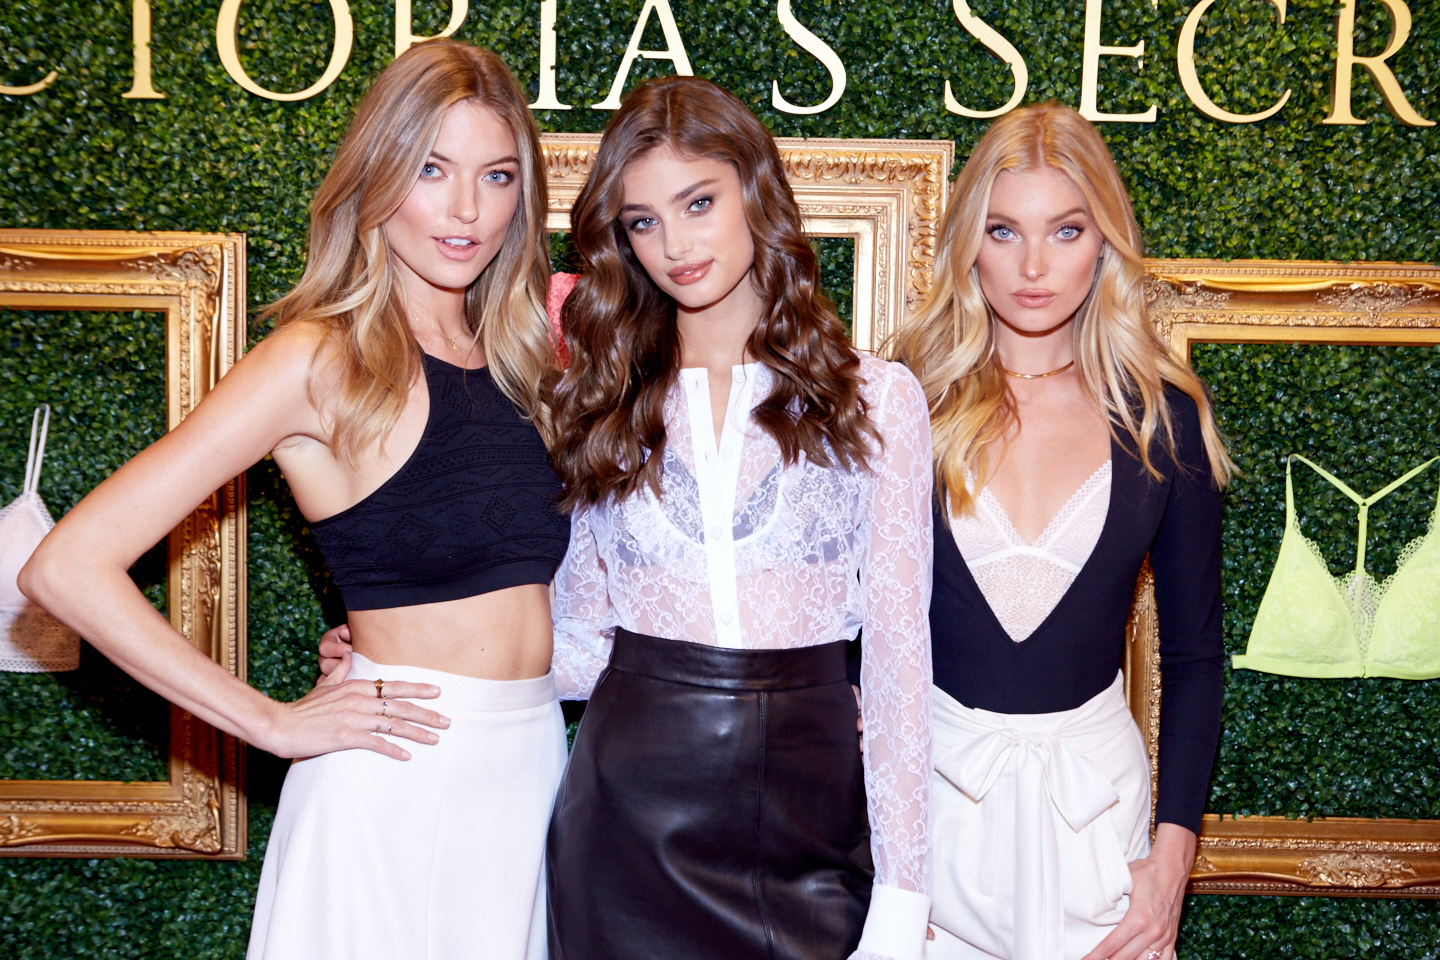 Victoria's Secret Angels Martha, Taylor, & Elsa At Herald Square Live Bralette Launch Press Event. Venues Of The Victoria's Secret Fashion Show. Locations In Victoria's Secret Fashion Show History.